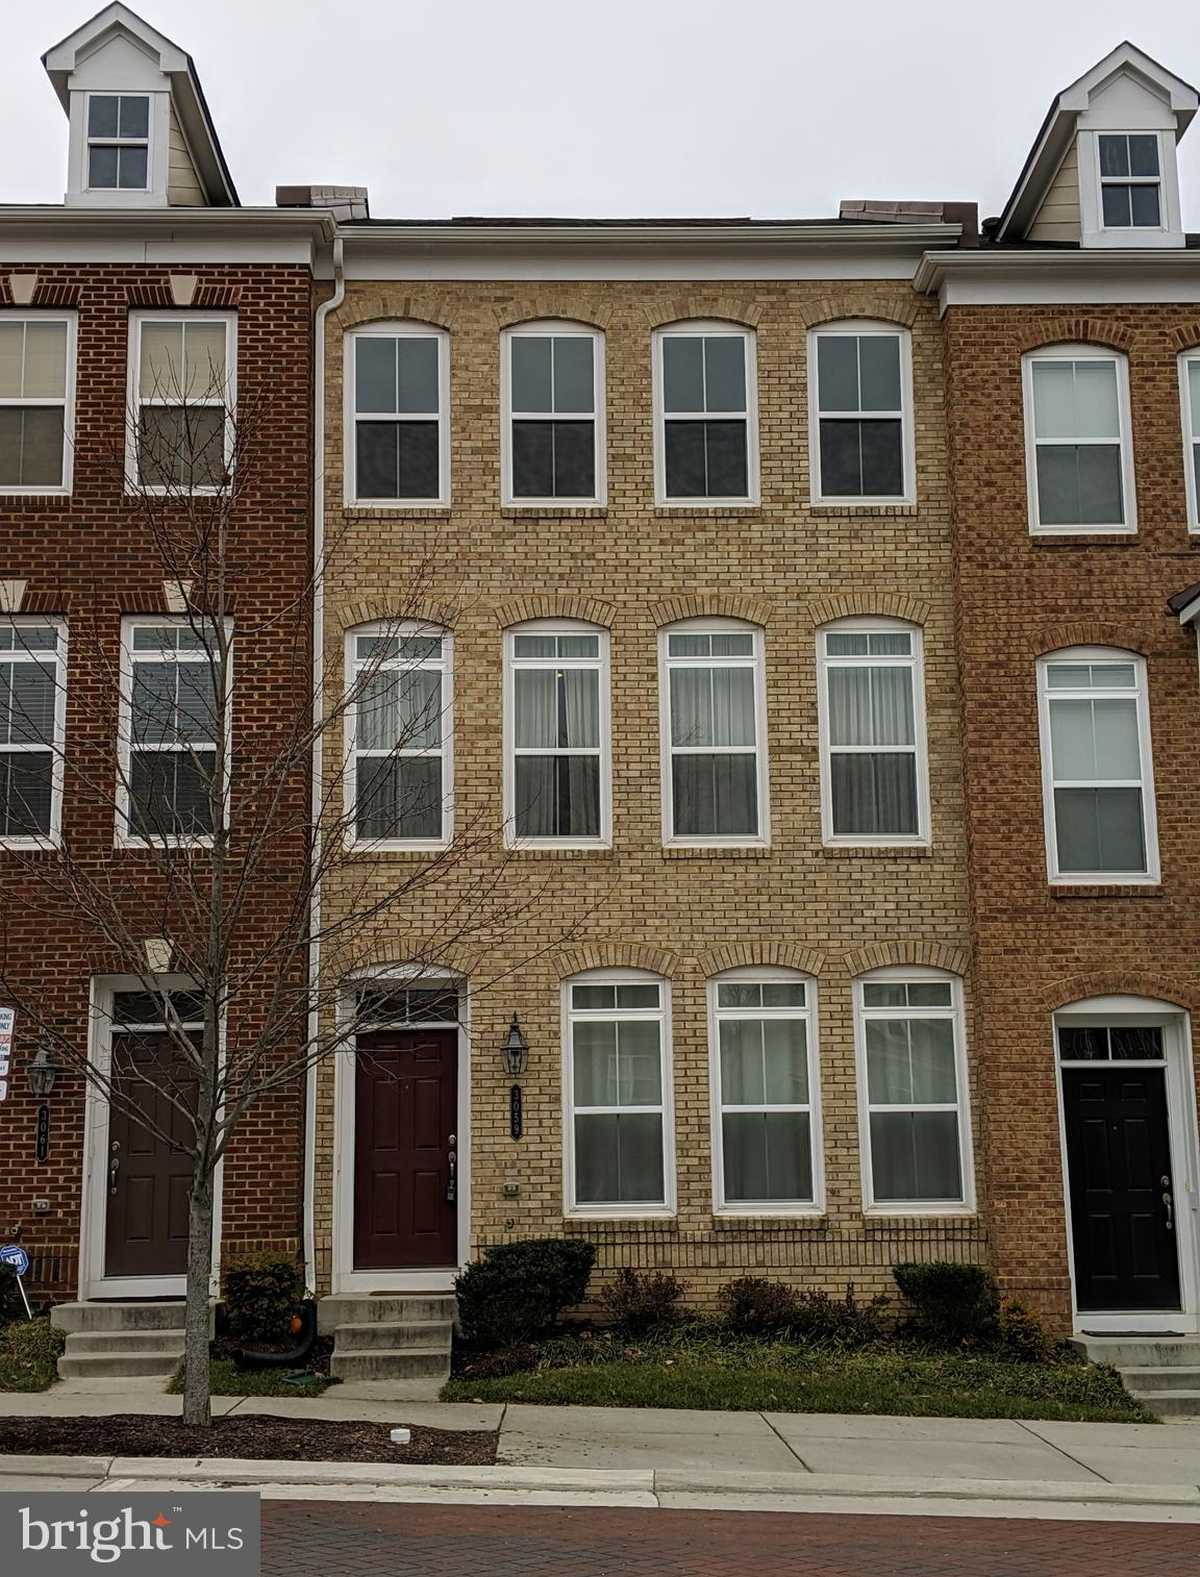 $3,300 - 3Br/4Ba -  for Sale in Metrowest, Fairfax